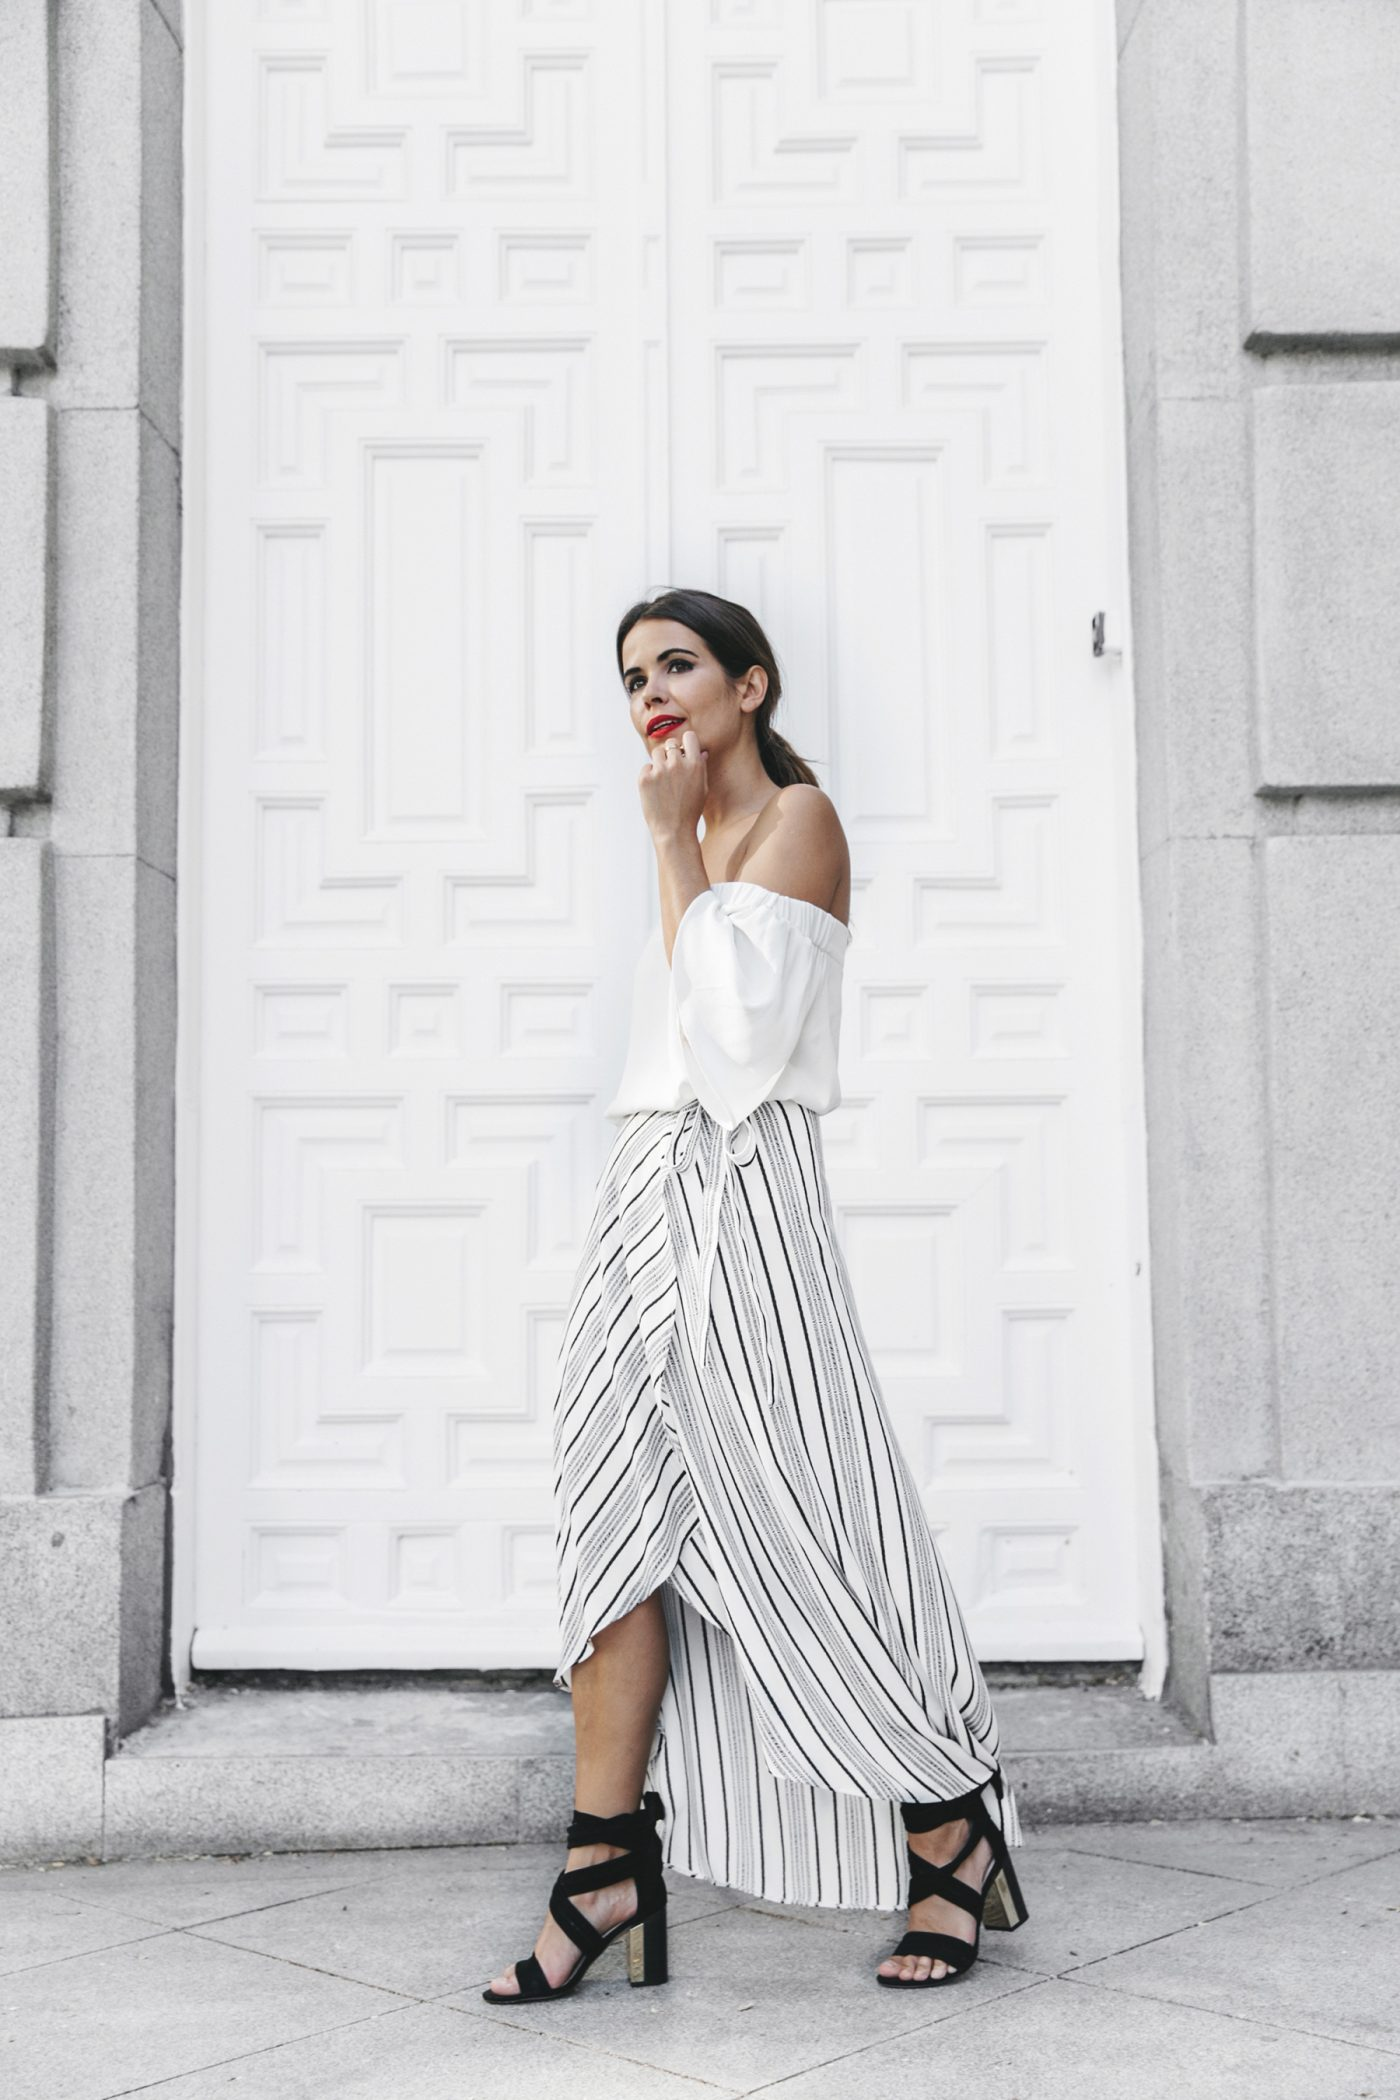 River_Island-El_Imparcial-Striped_SKirt-Off_Shoulders_Top-Lace_Up_Sandals-CHanel_Vintage_Bag-22